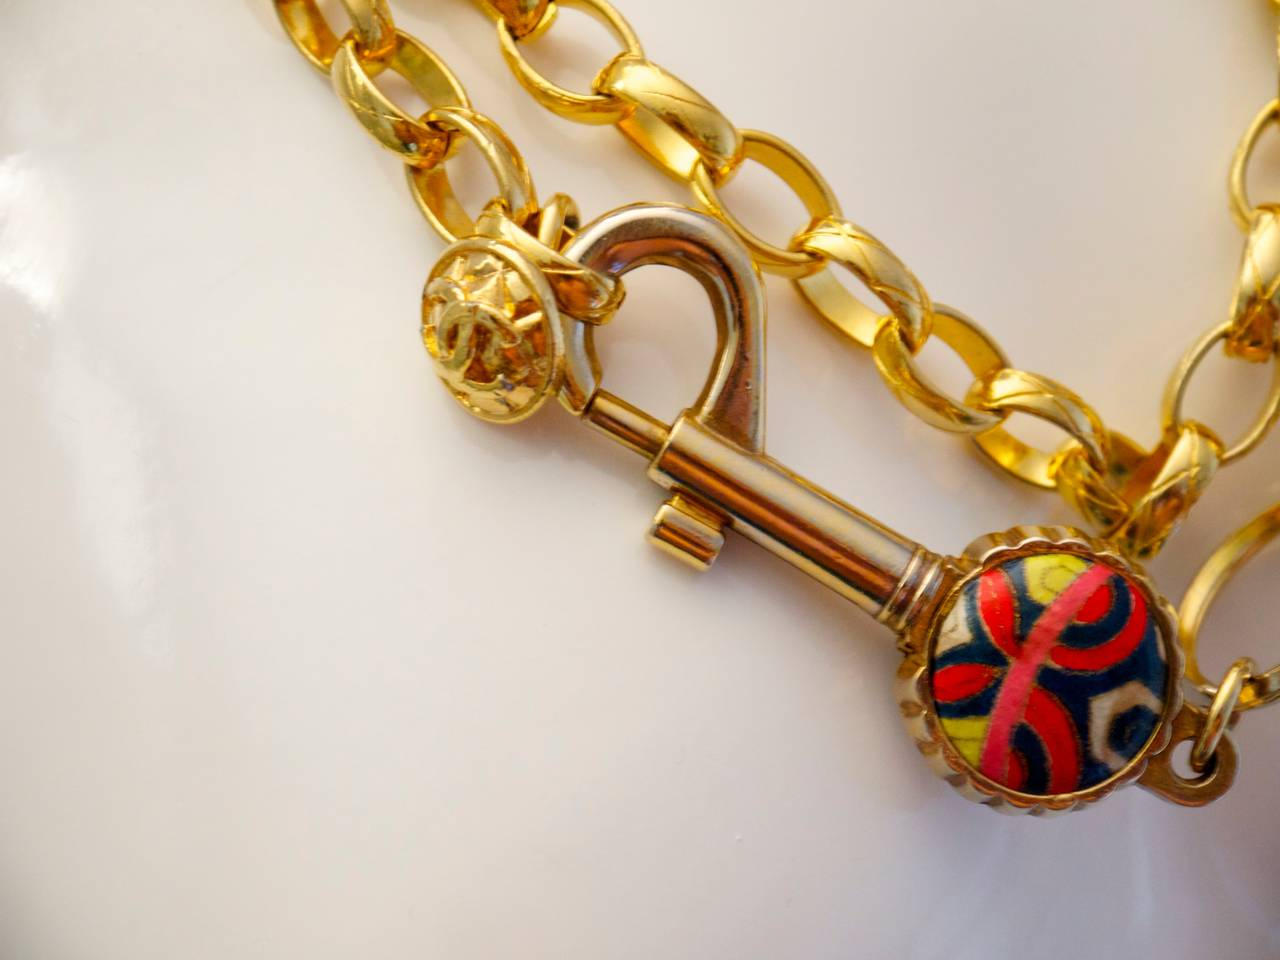 Vintage Chanel Gold Tone Belt / Necklace - Lock and Key - Rare For Sale 1